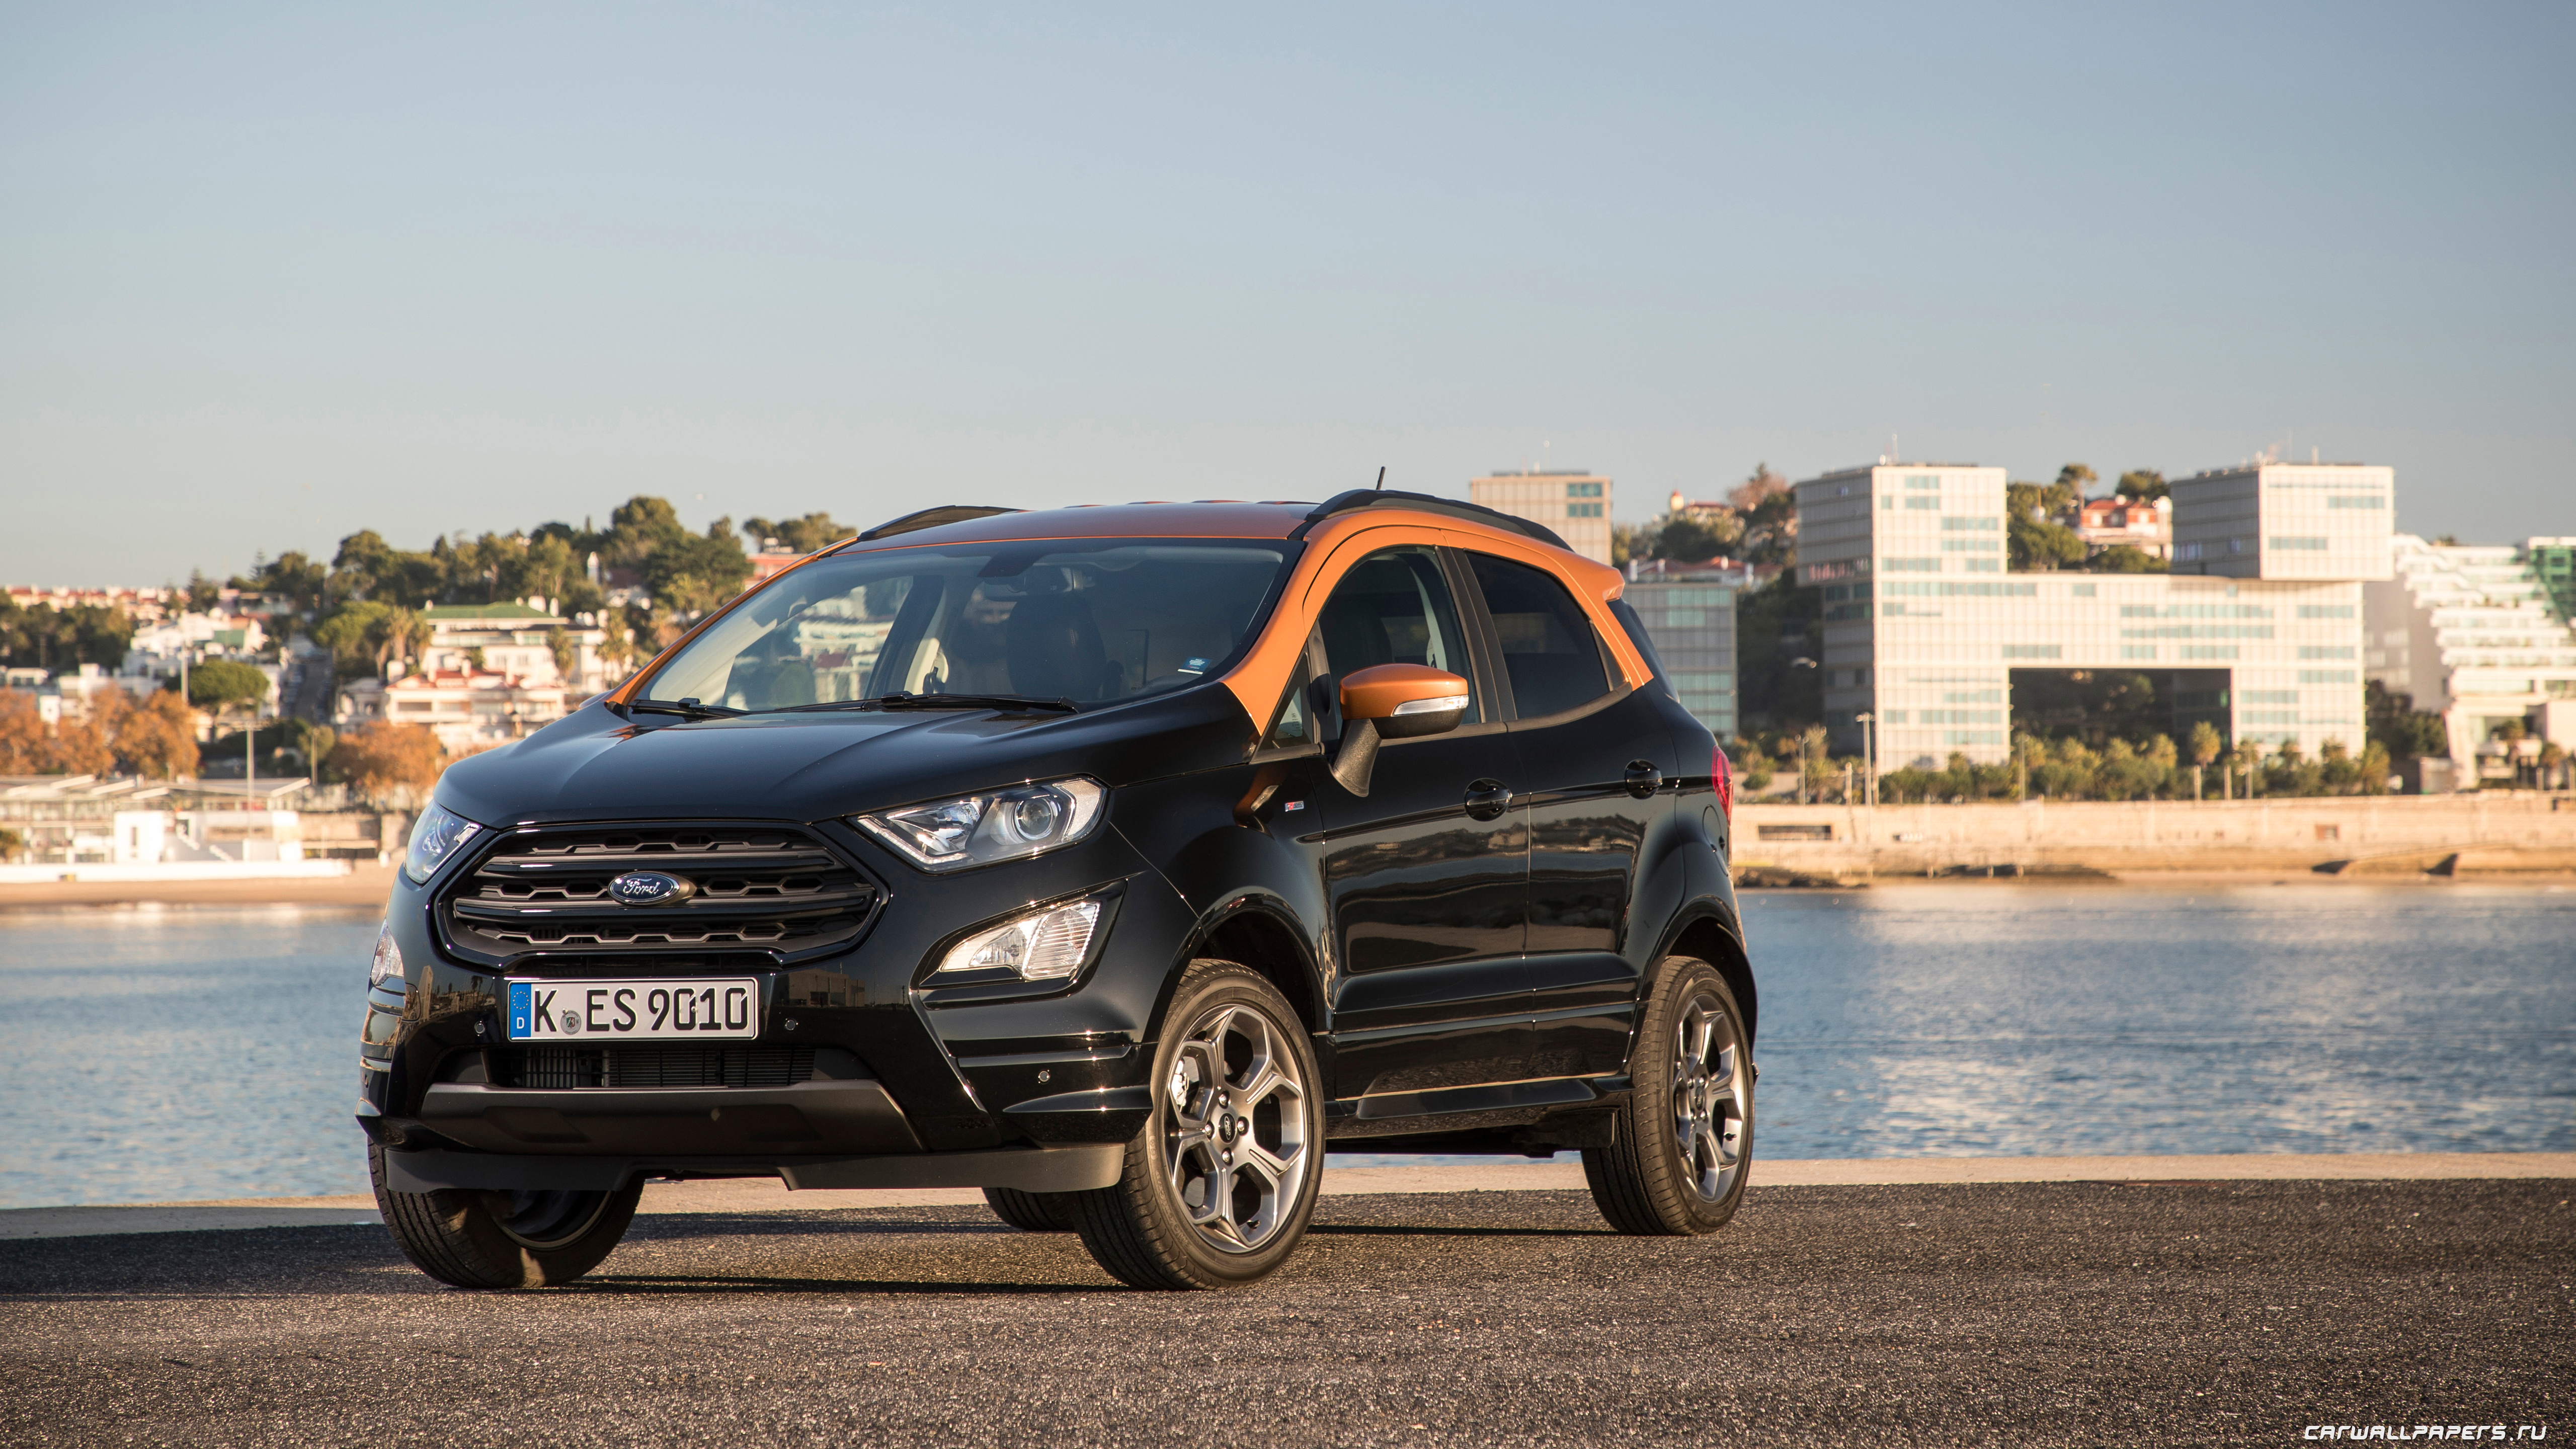 Ford ecosport photos wallpapers 13 Perfectly Timed